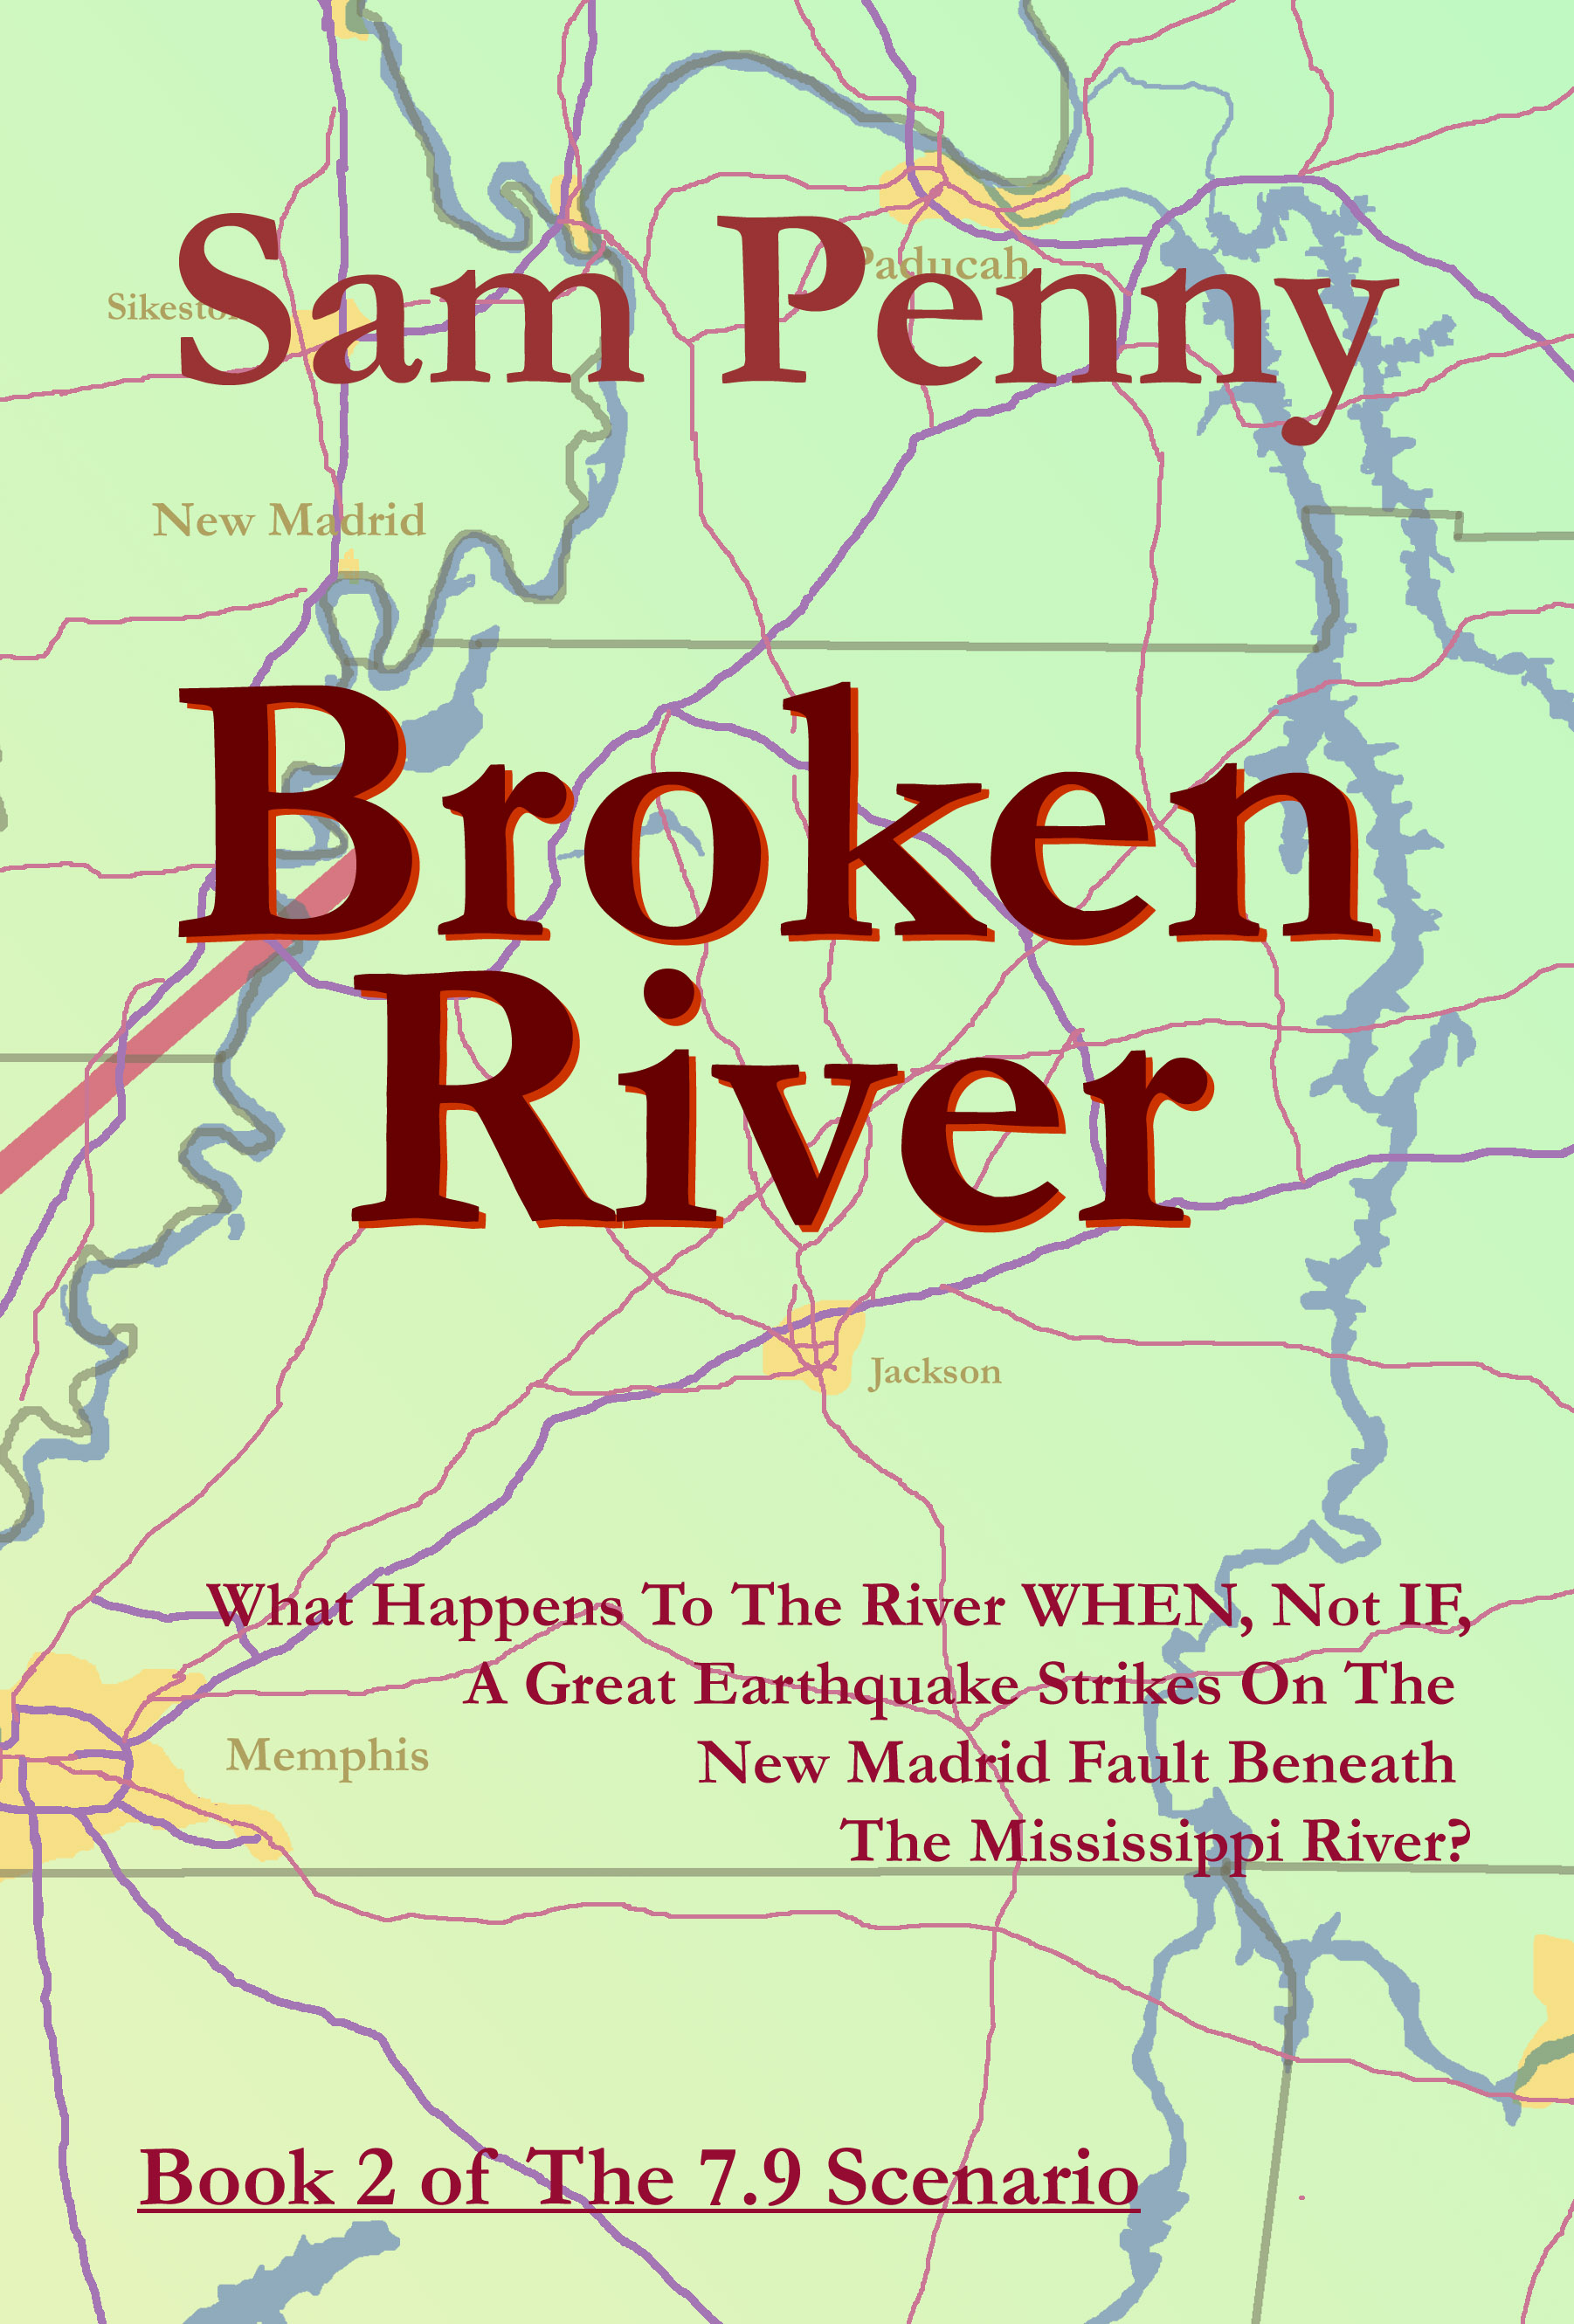 Novels by Sam Penny describing a scenario of a repeat of the 1811-12 earthquakes on the New Madrid Fault